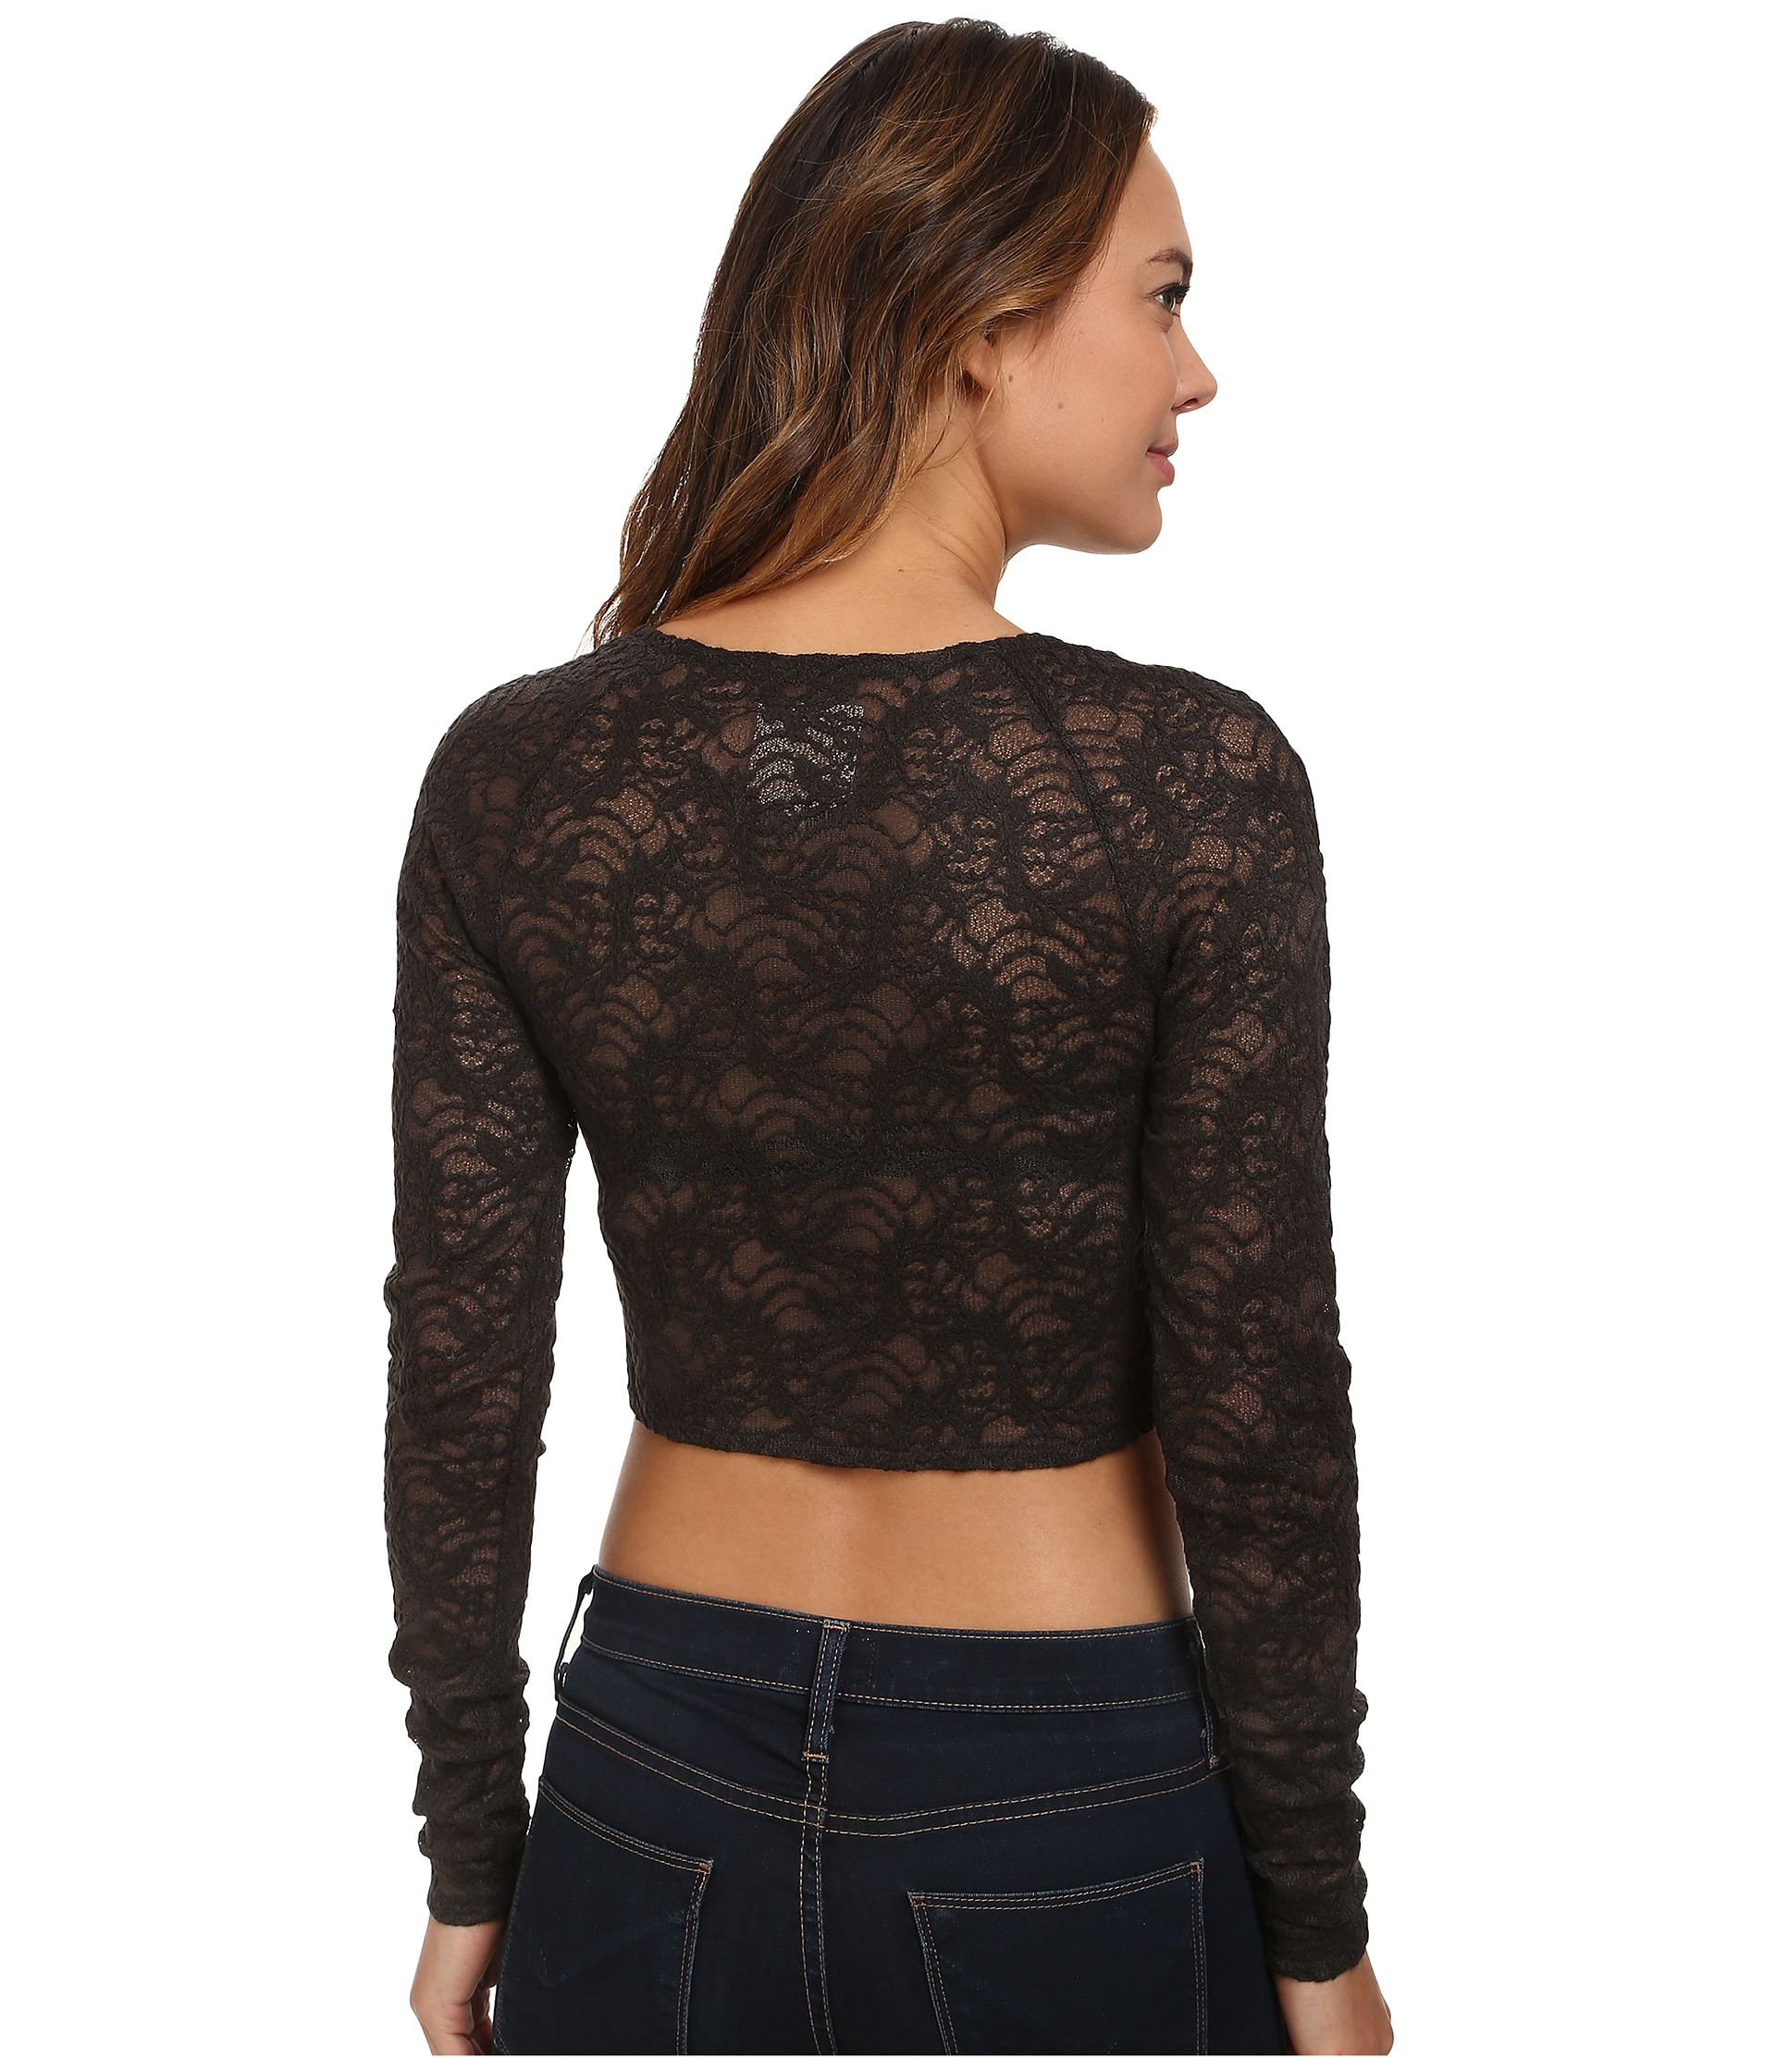 Lyst - Chaser Stretch Lace Crop Long Sleeve Top in Black 28ed10a3d06f